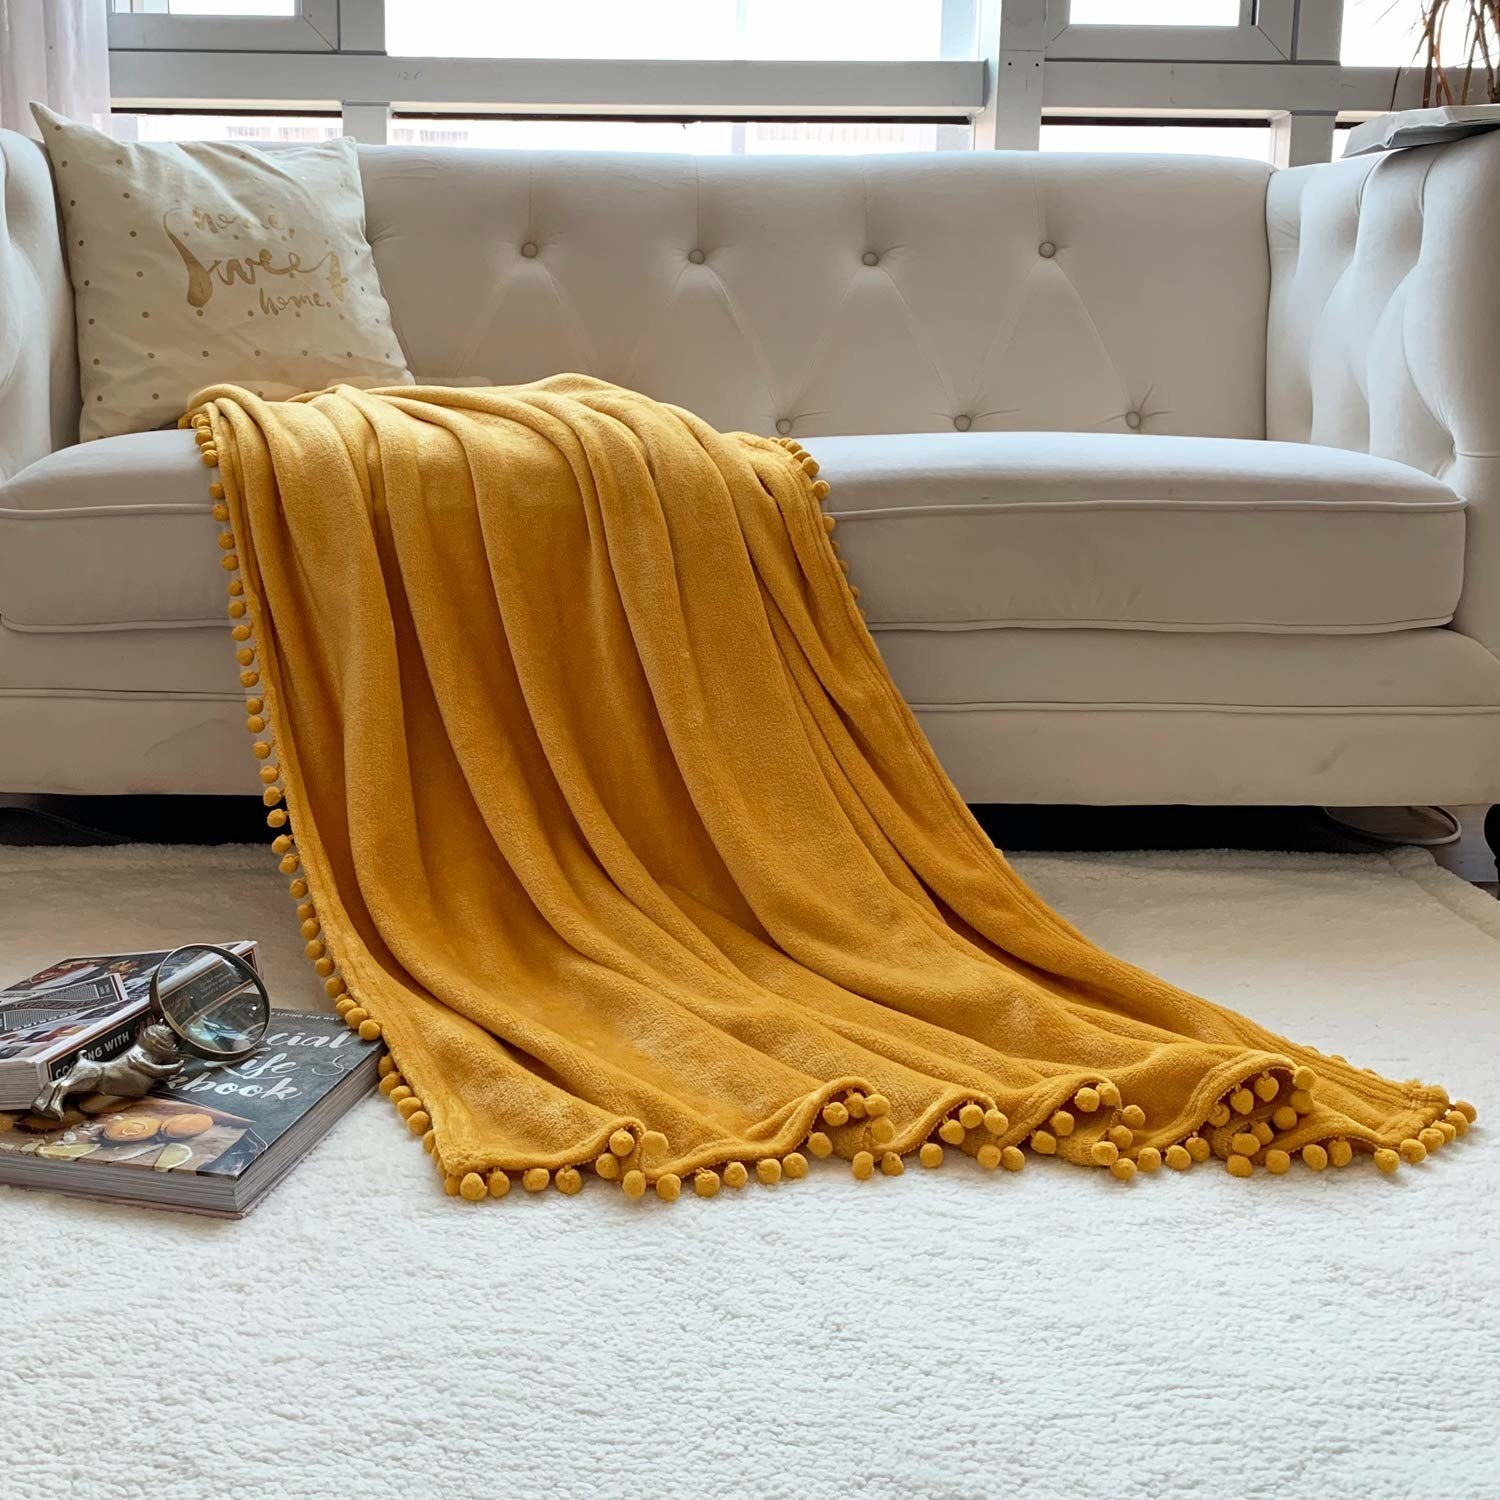 yellow blanket with pom pom trim on it thrown over a beige couch